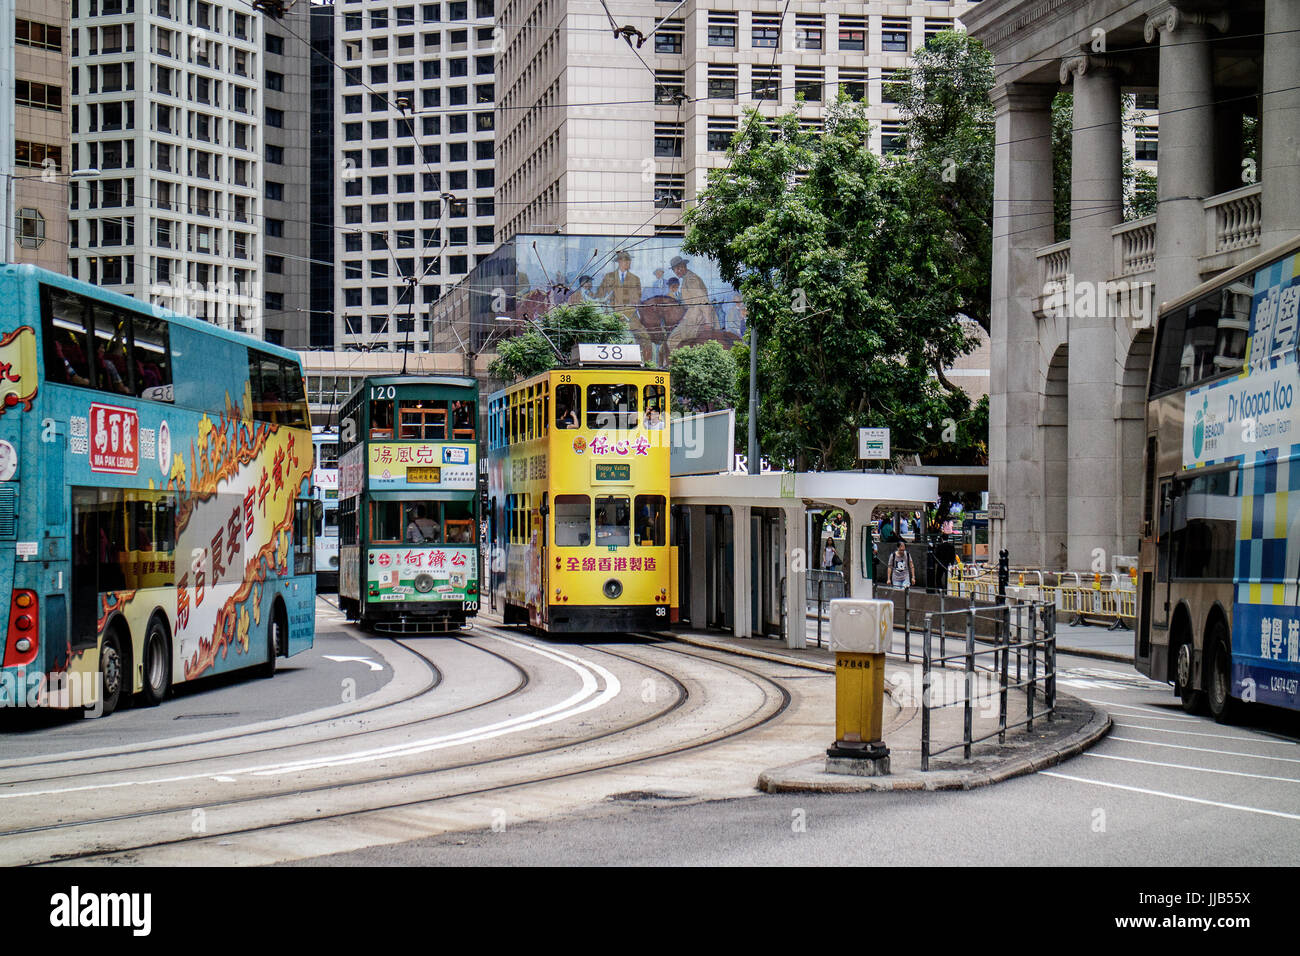 Colorful, iconic double-decker trams of Hong Kong at Bank Street stop - Stock Image